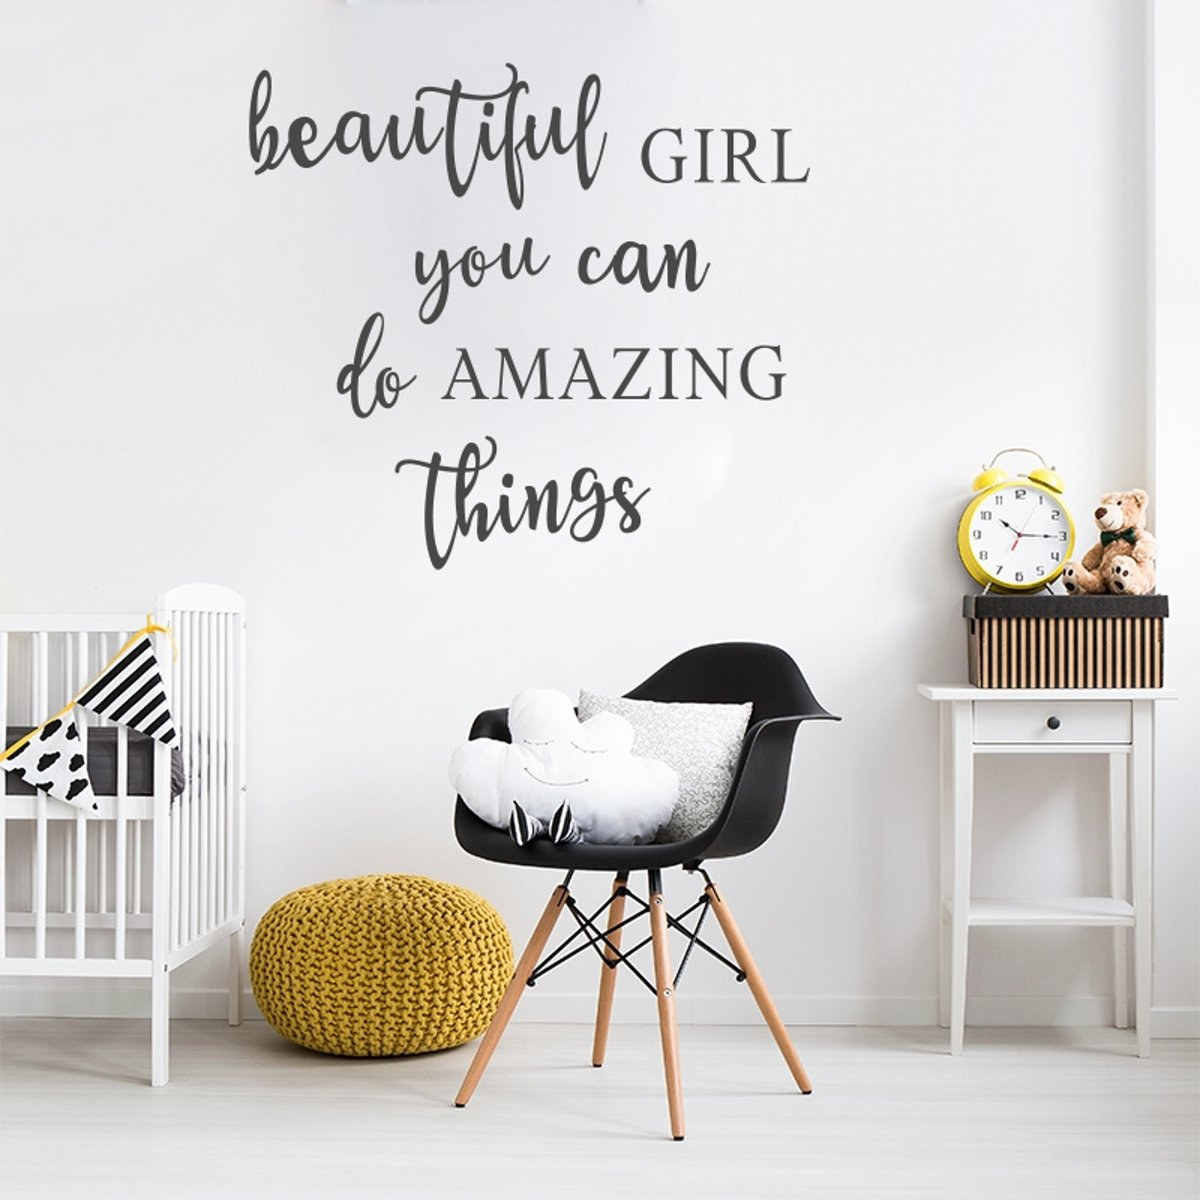 Muurstickers Babykamer Tekst Muursticker Tekst Beautiful Girl Amazing Thing Babykamer Kinderkamer Meisje Modern Hip